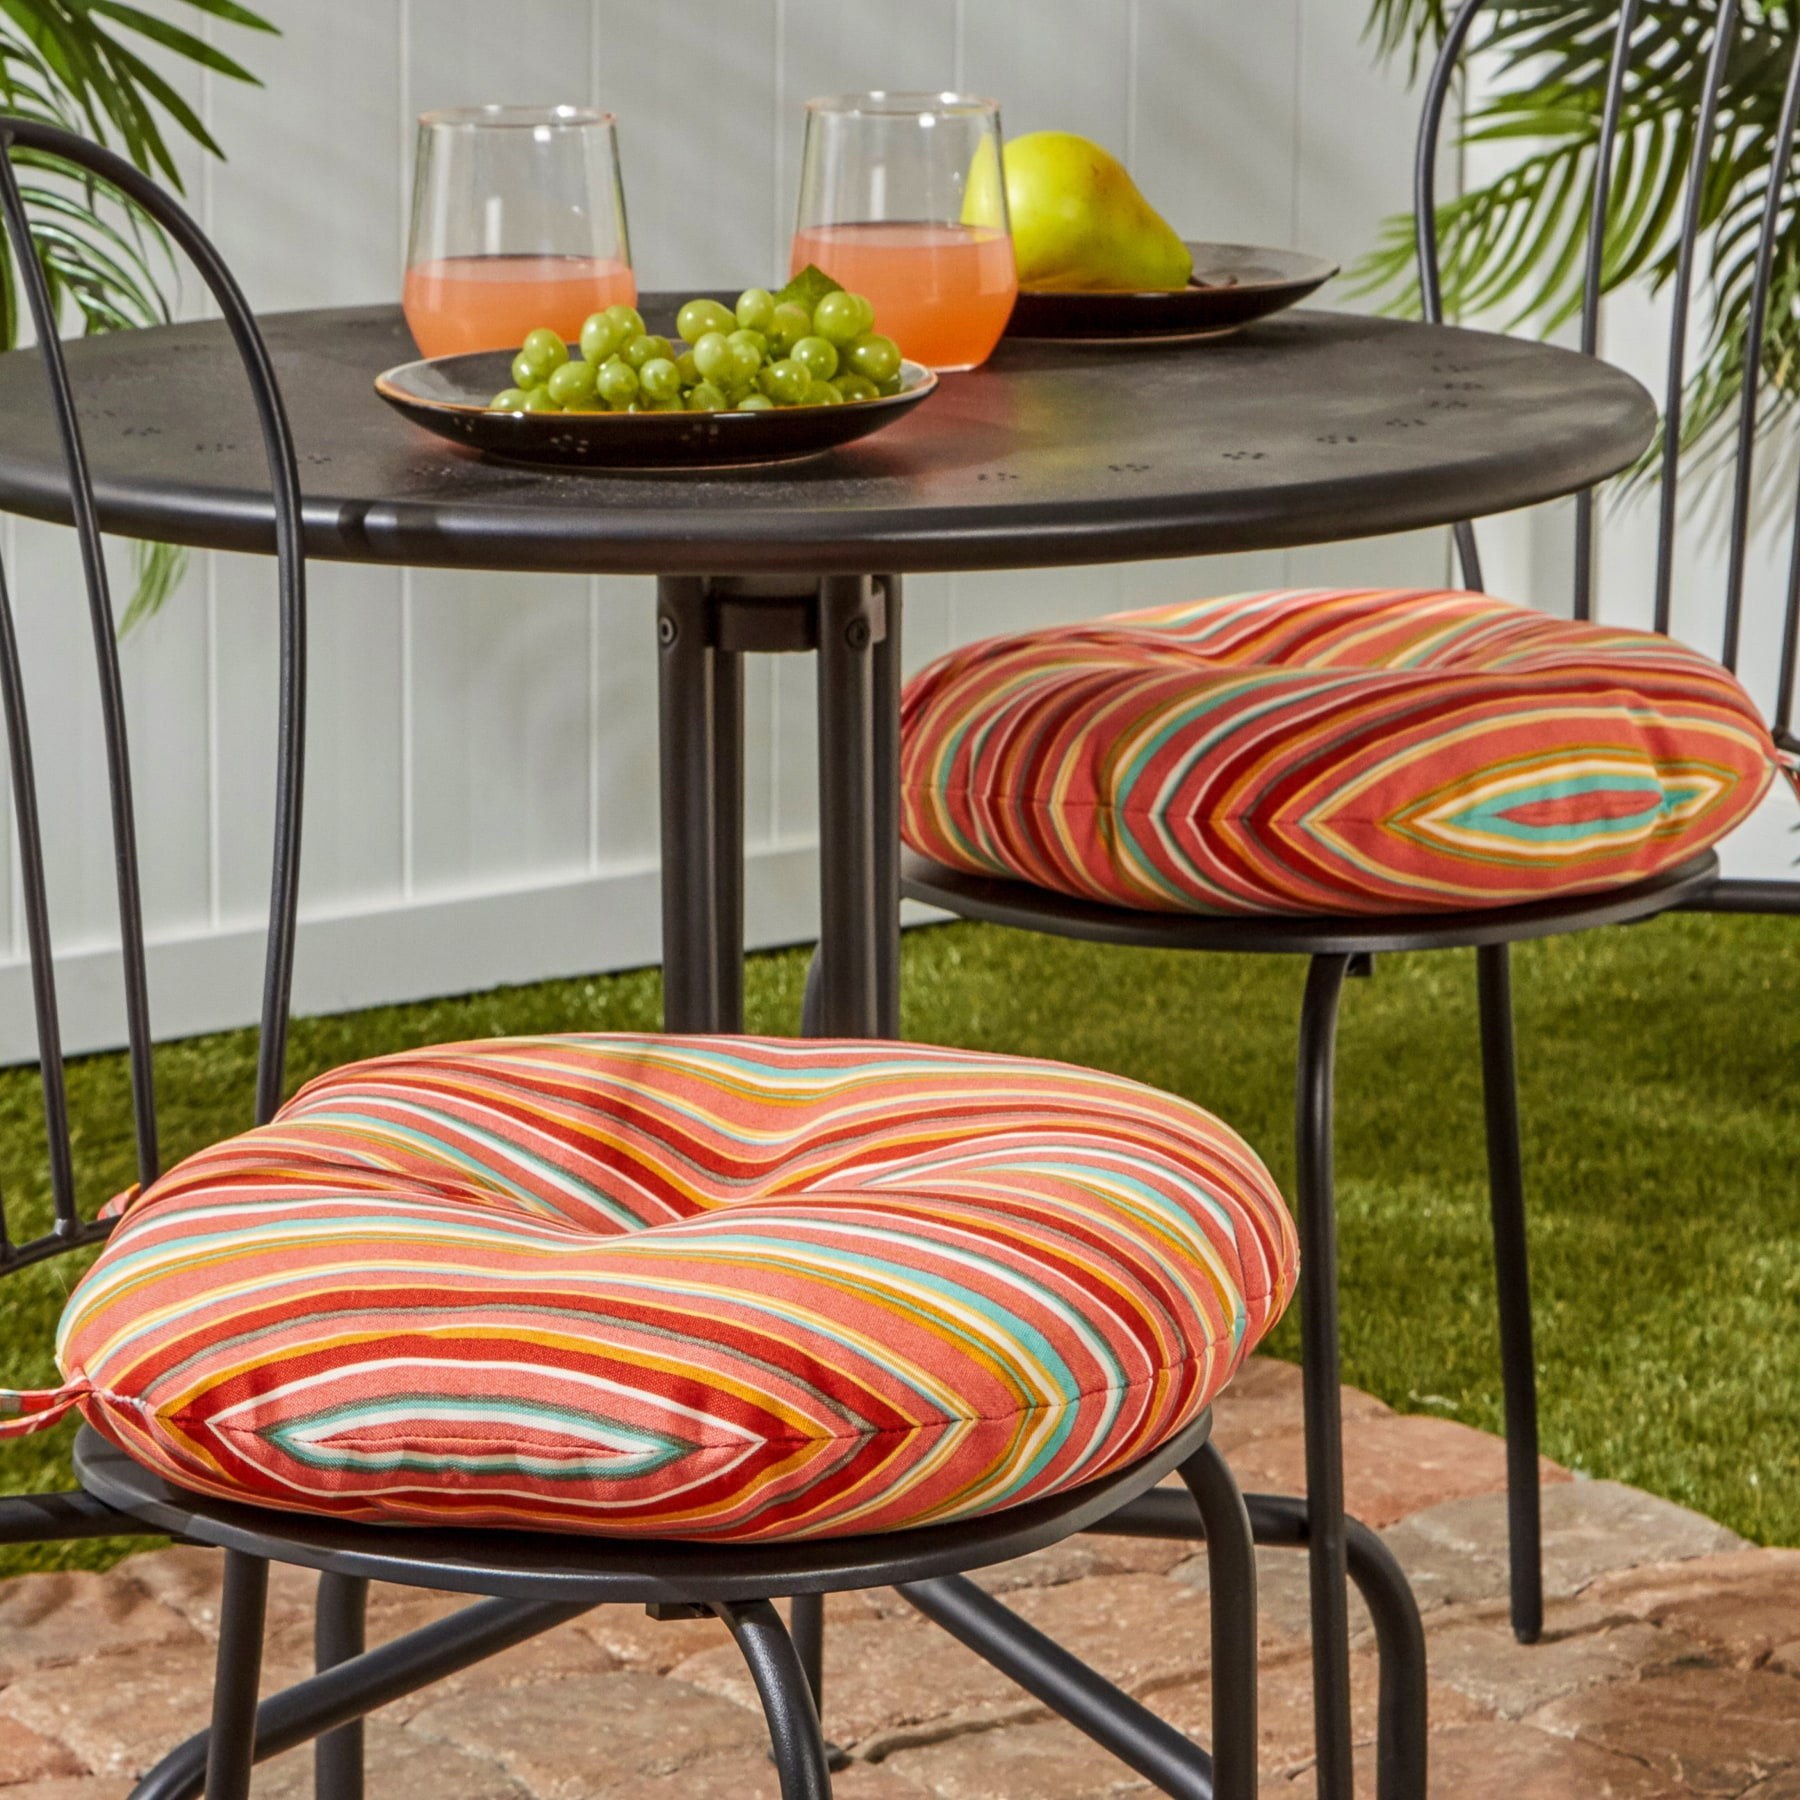 Charmant Shop Havenside Home Colton Outdoor 15 Inch Stripe Bistro Chair Cushions (Set  Of 2)   Free Shipping On Orders Over $45   Overstock.com   22751363